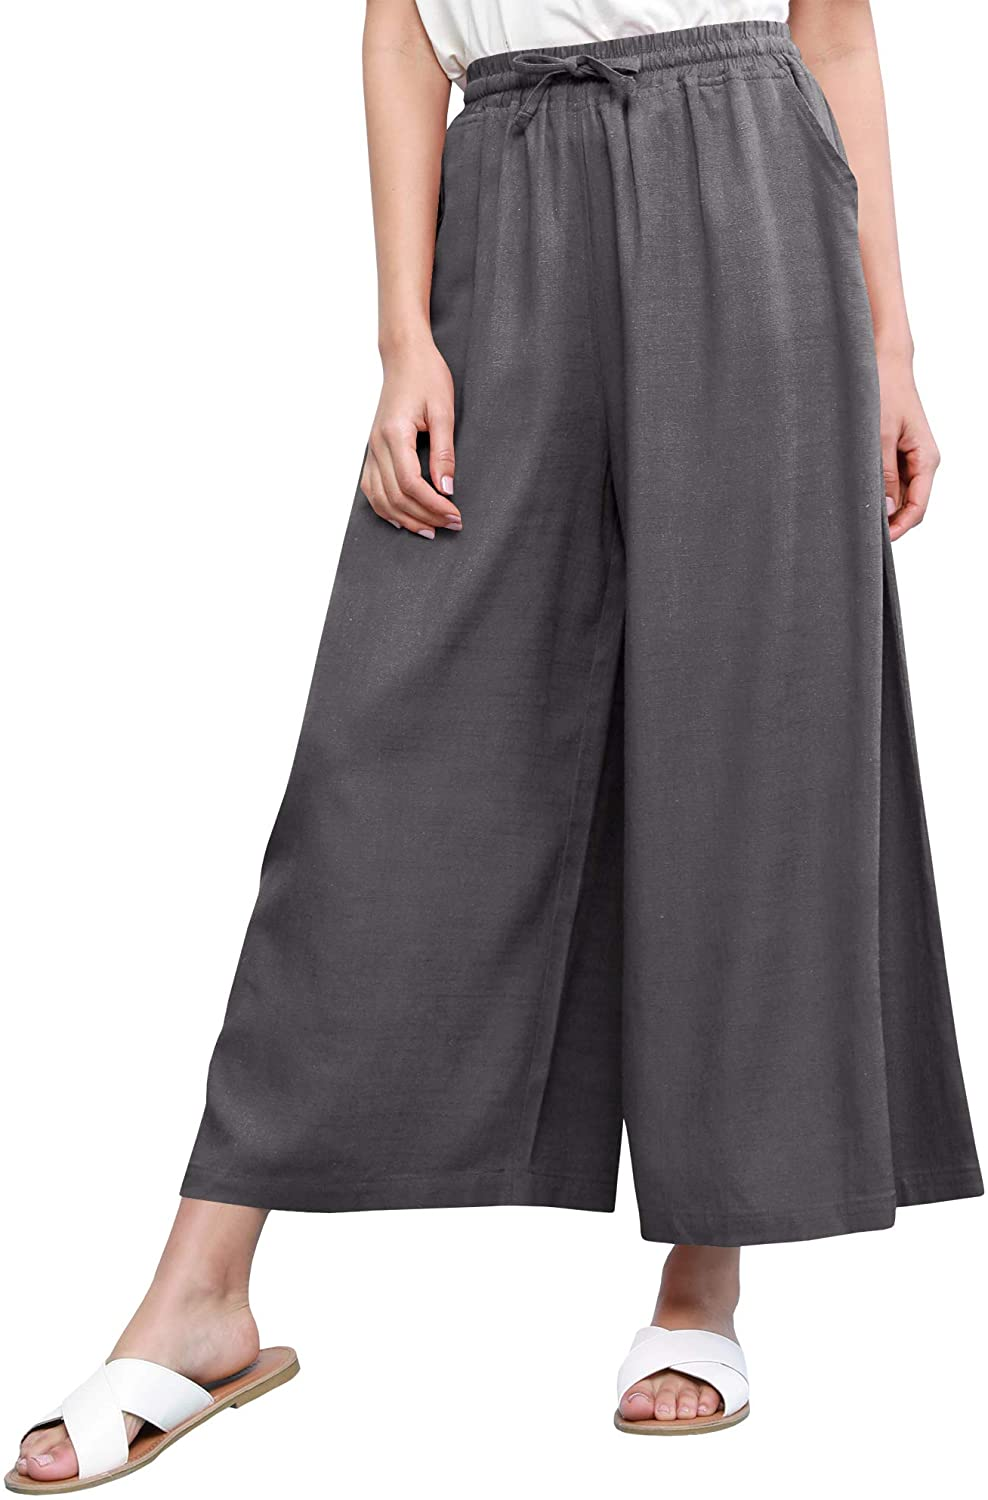 Come Together California Women's Washed Linen Casual Loose Wide Leg Pants Pocket with Draw String